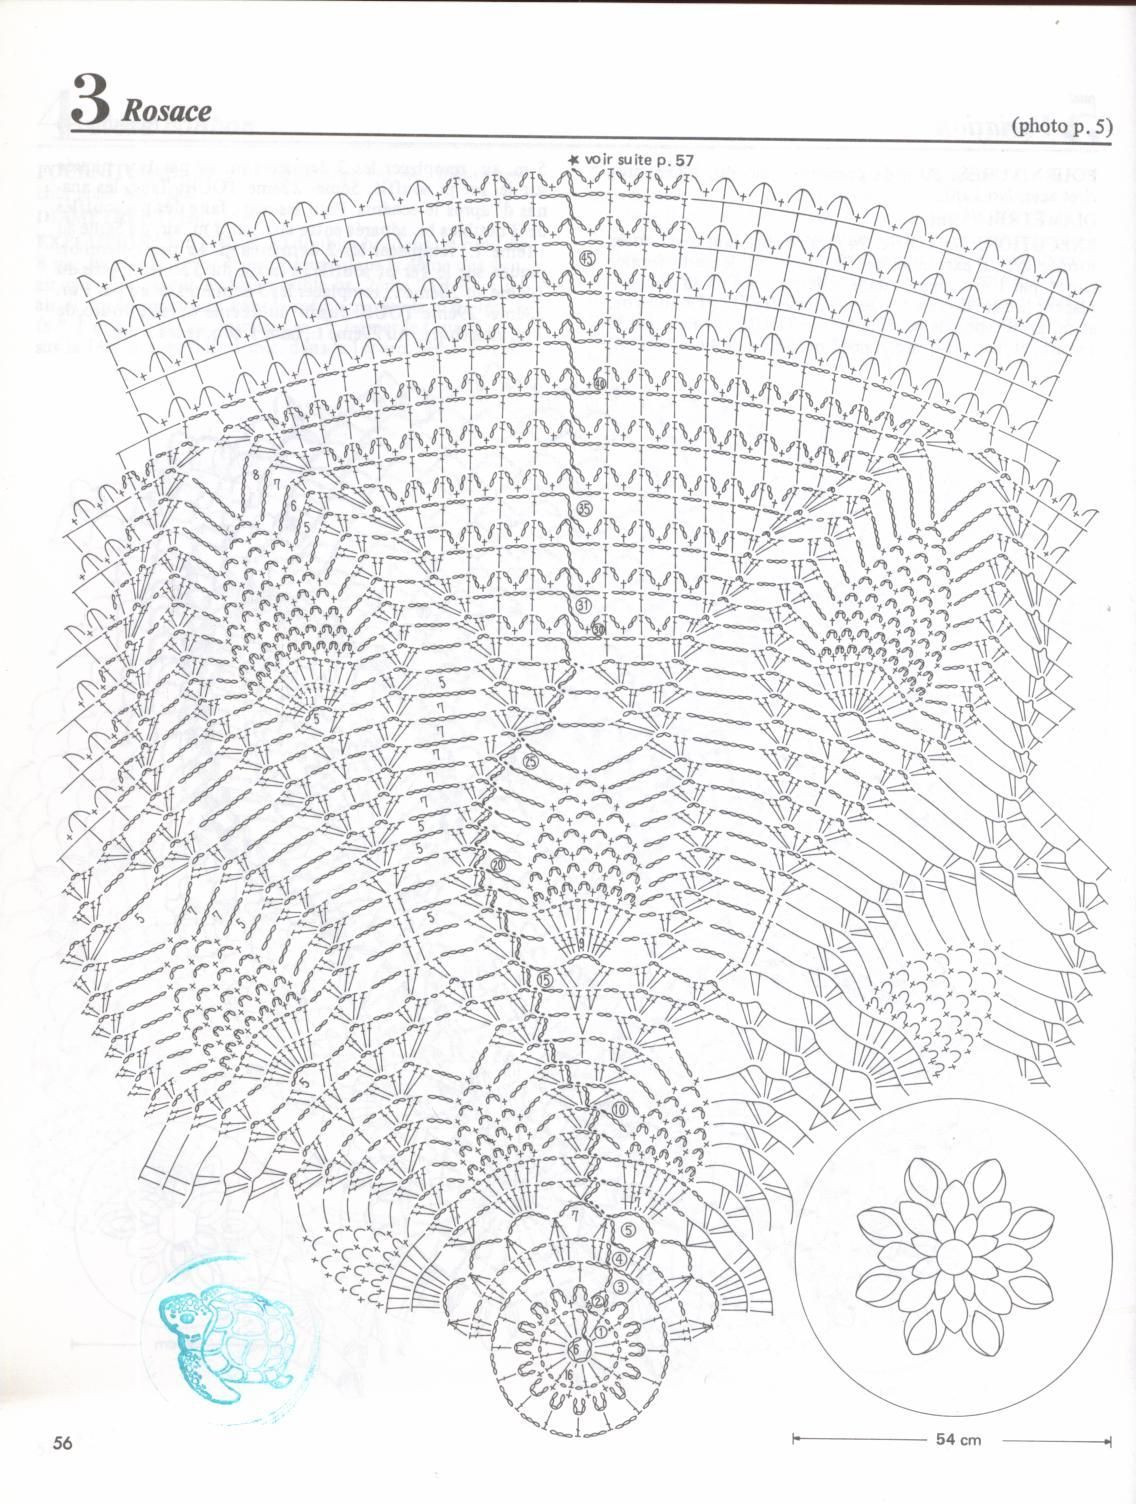 Patrones Carpeta 11361504 Cortinas Y Manteles Pinterest Crochet Doily Diagram 2 Patterns Pin Crocheting Pattern Image Basil Bulgaria Tablecloths